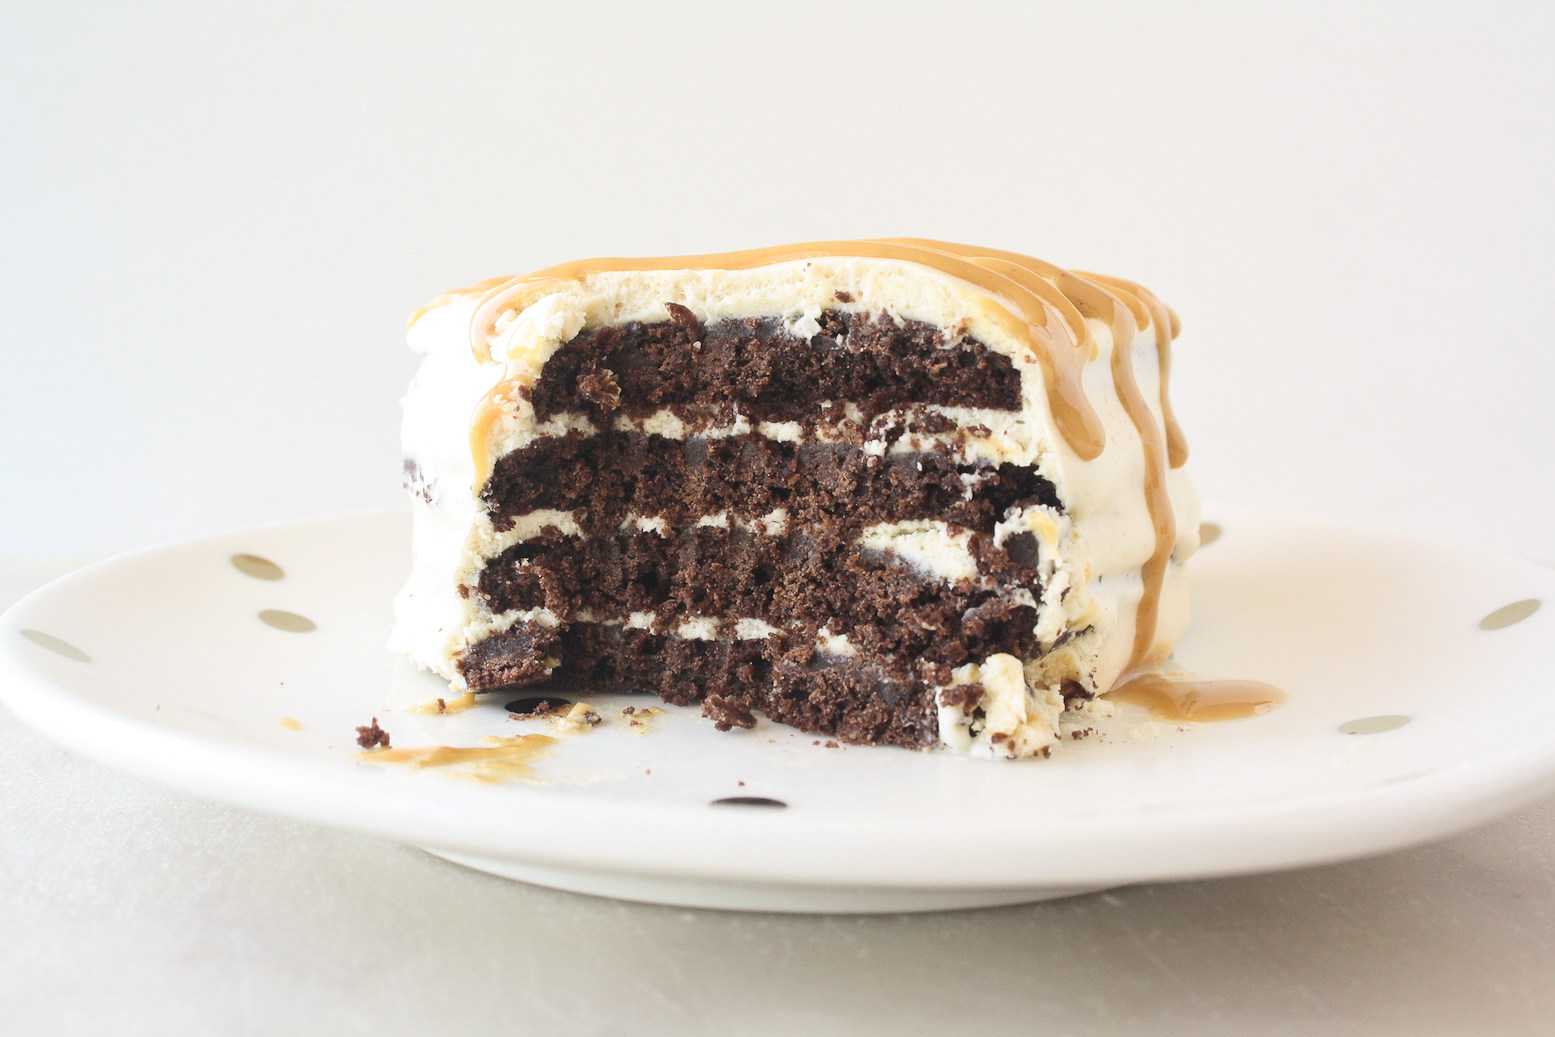 Easy and delicious icebox cakes with homemade chocolate cookies and peanut butter whipped cream!